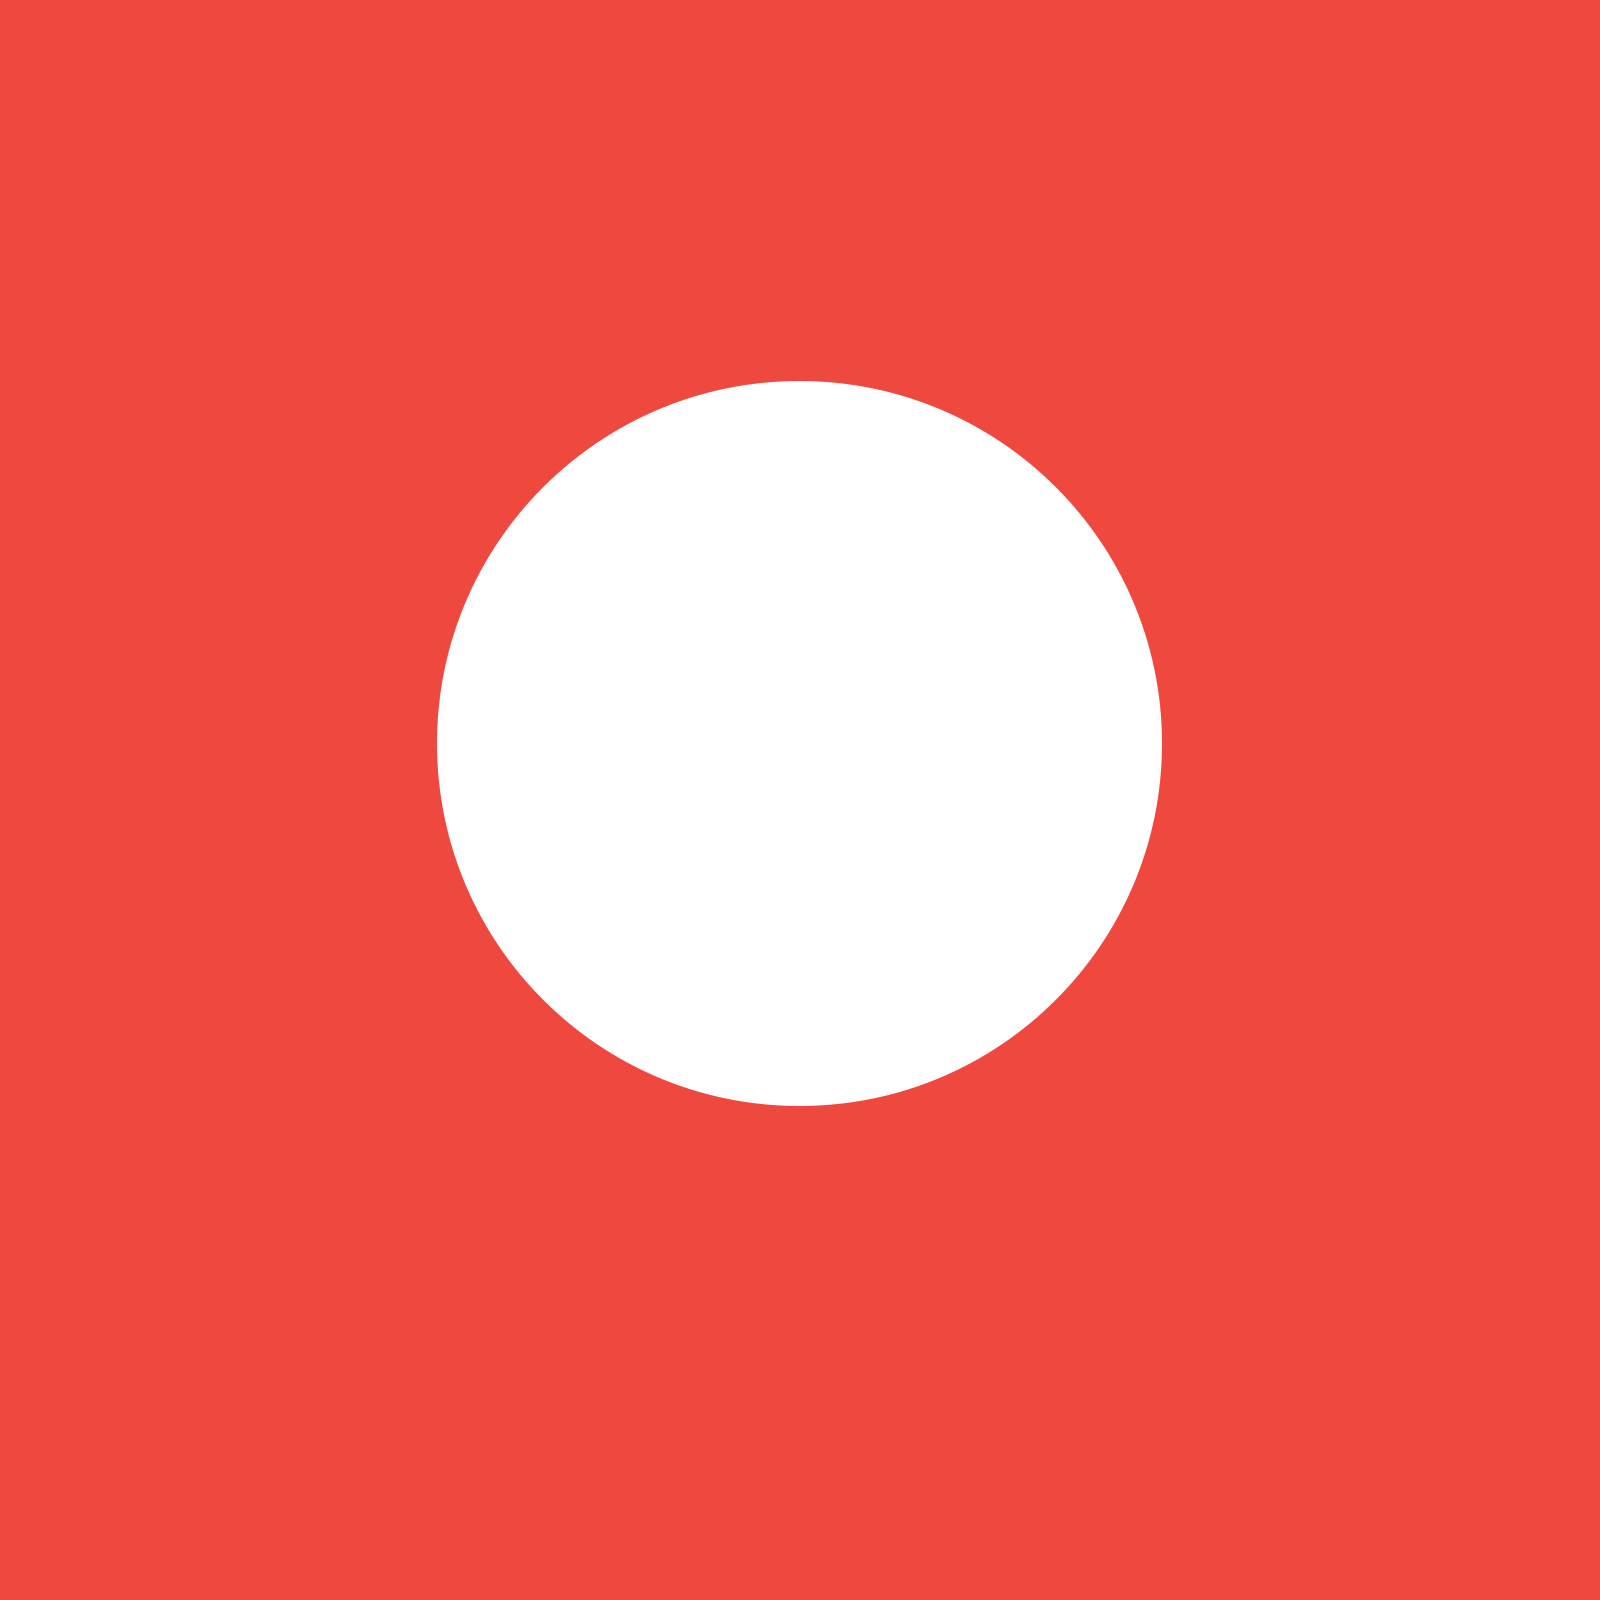 A white circle on a red background